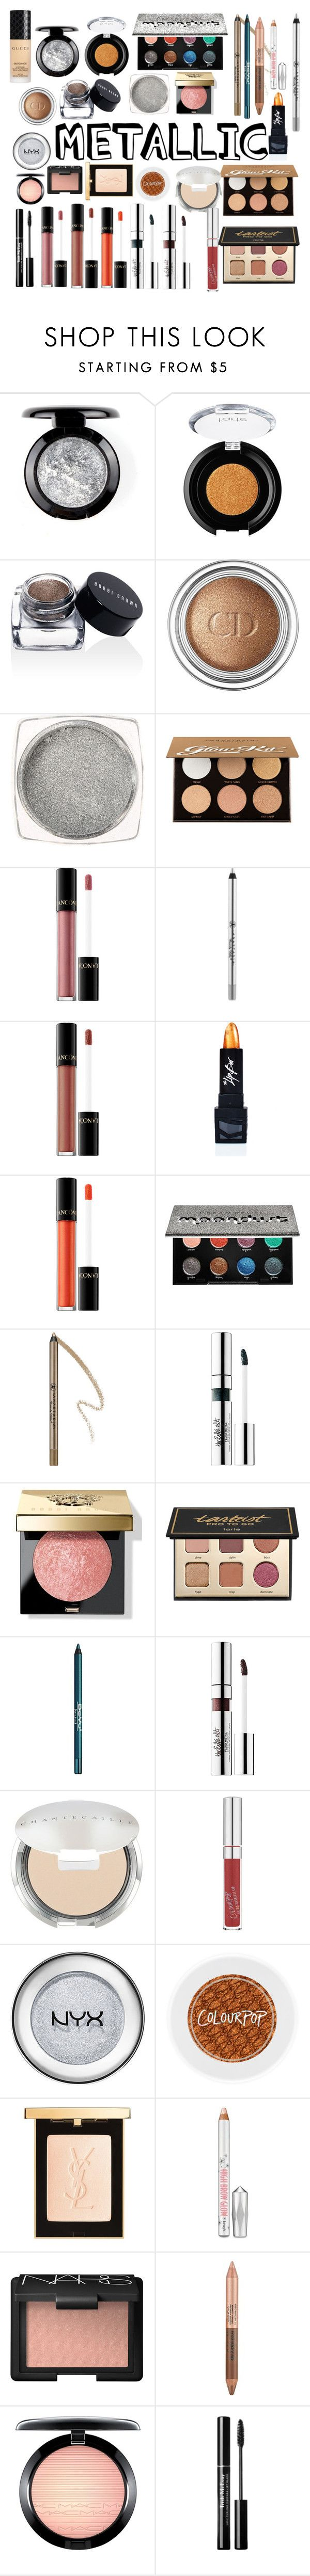 """Metallic💅🏻👣"" by mariegranja ❤ liked on Polyvore featuring beauty, tarte, Bobbi Brown Cosmetics, Christian Dior, Anastasia Beverly Hills, Lancôme, The Lip Bar, Urban Decay, BeYu and Chantecaille"